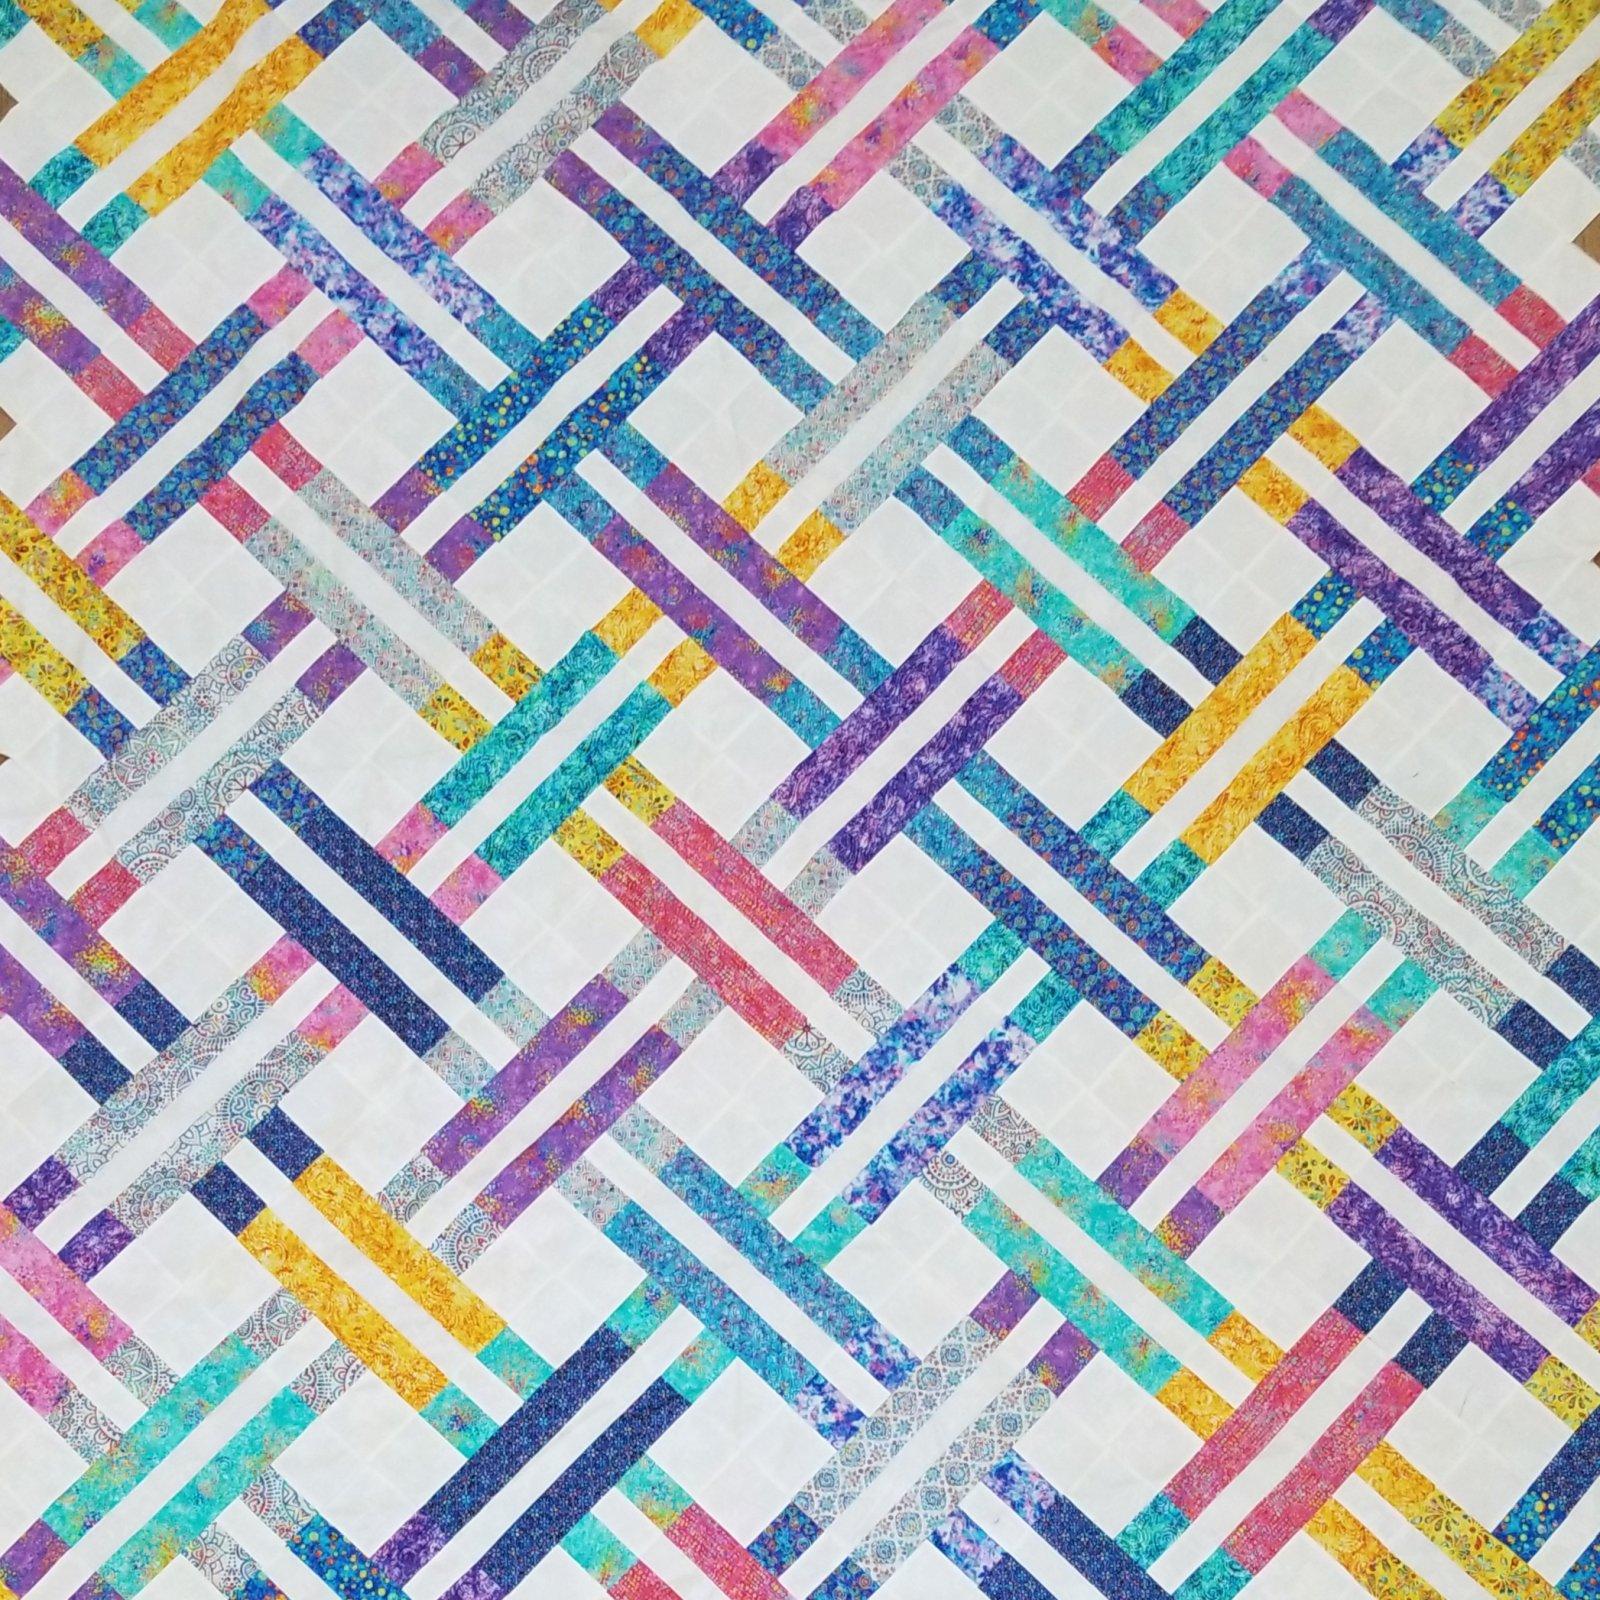 Jelly Weave Quilt Kit